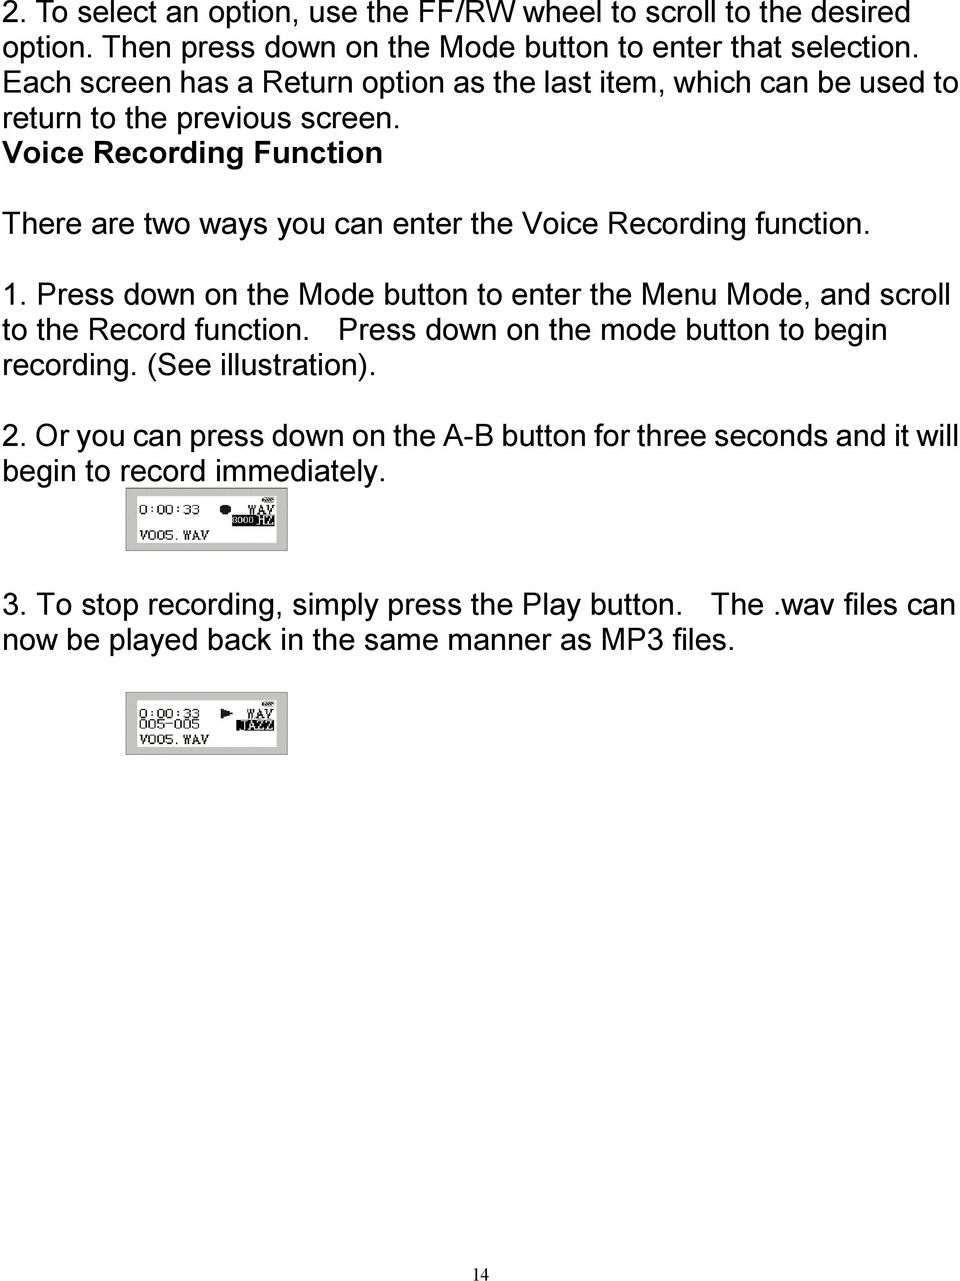 Voice Recording Function There are two ways you can enter the Voice Recording function. 1. Press down on the Mode button to enter the Menu Mode, and scroll to the Record function.